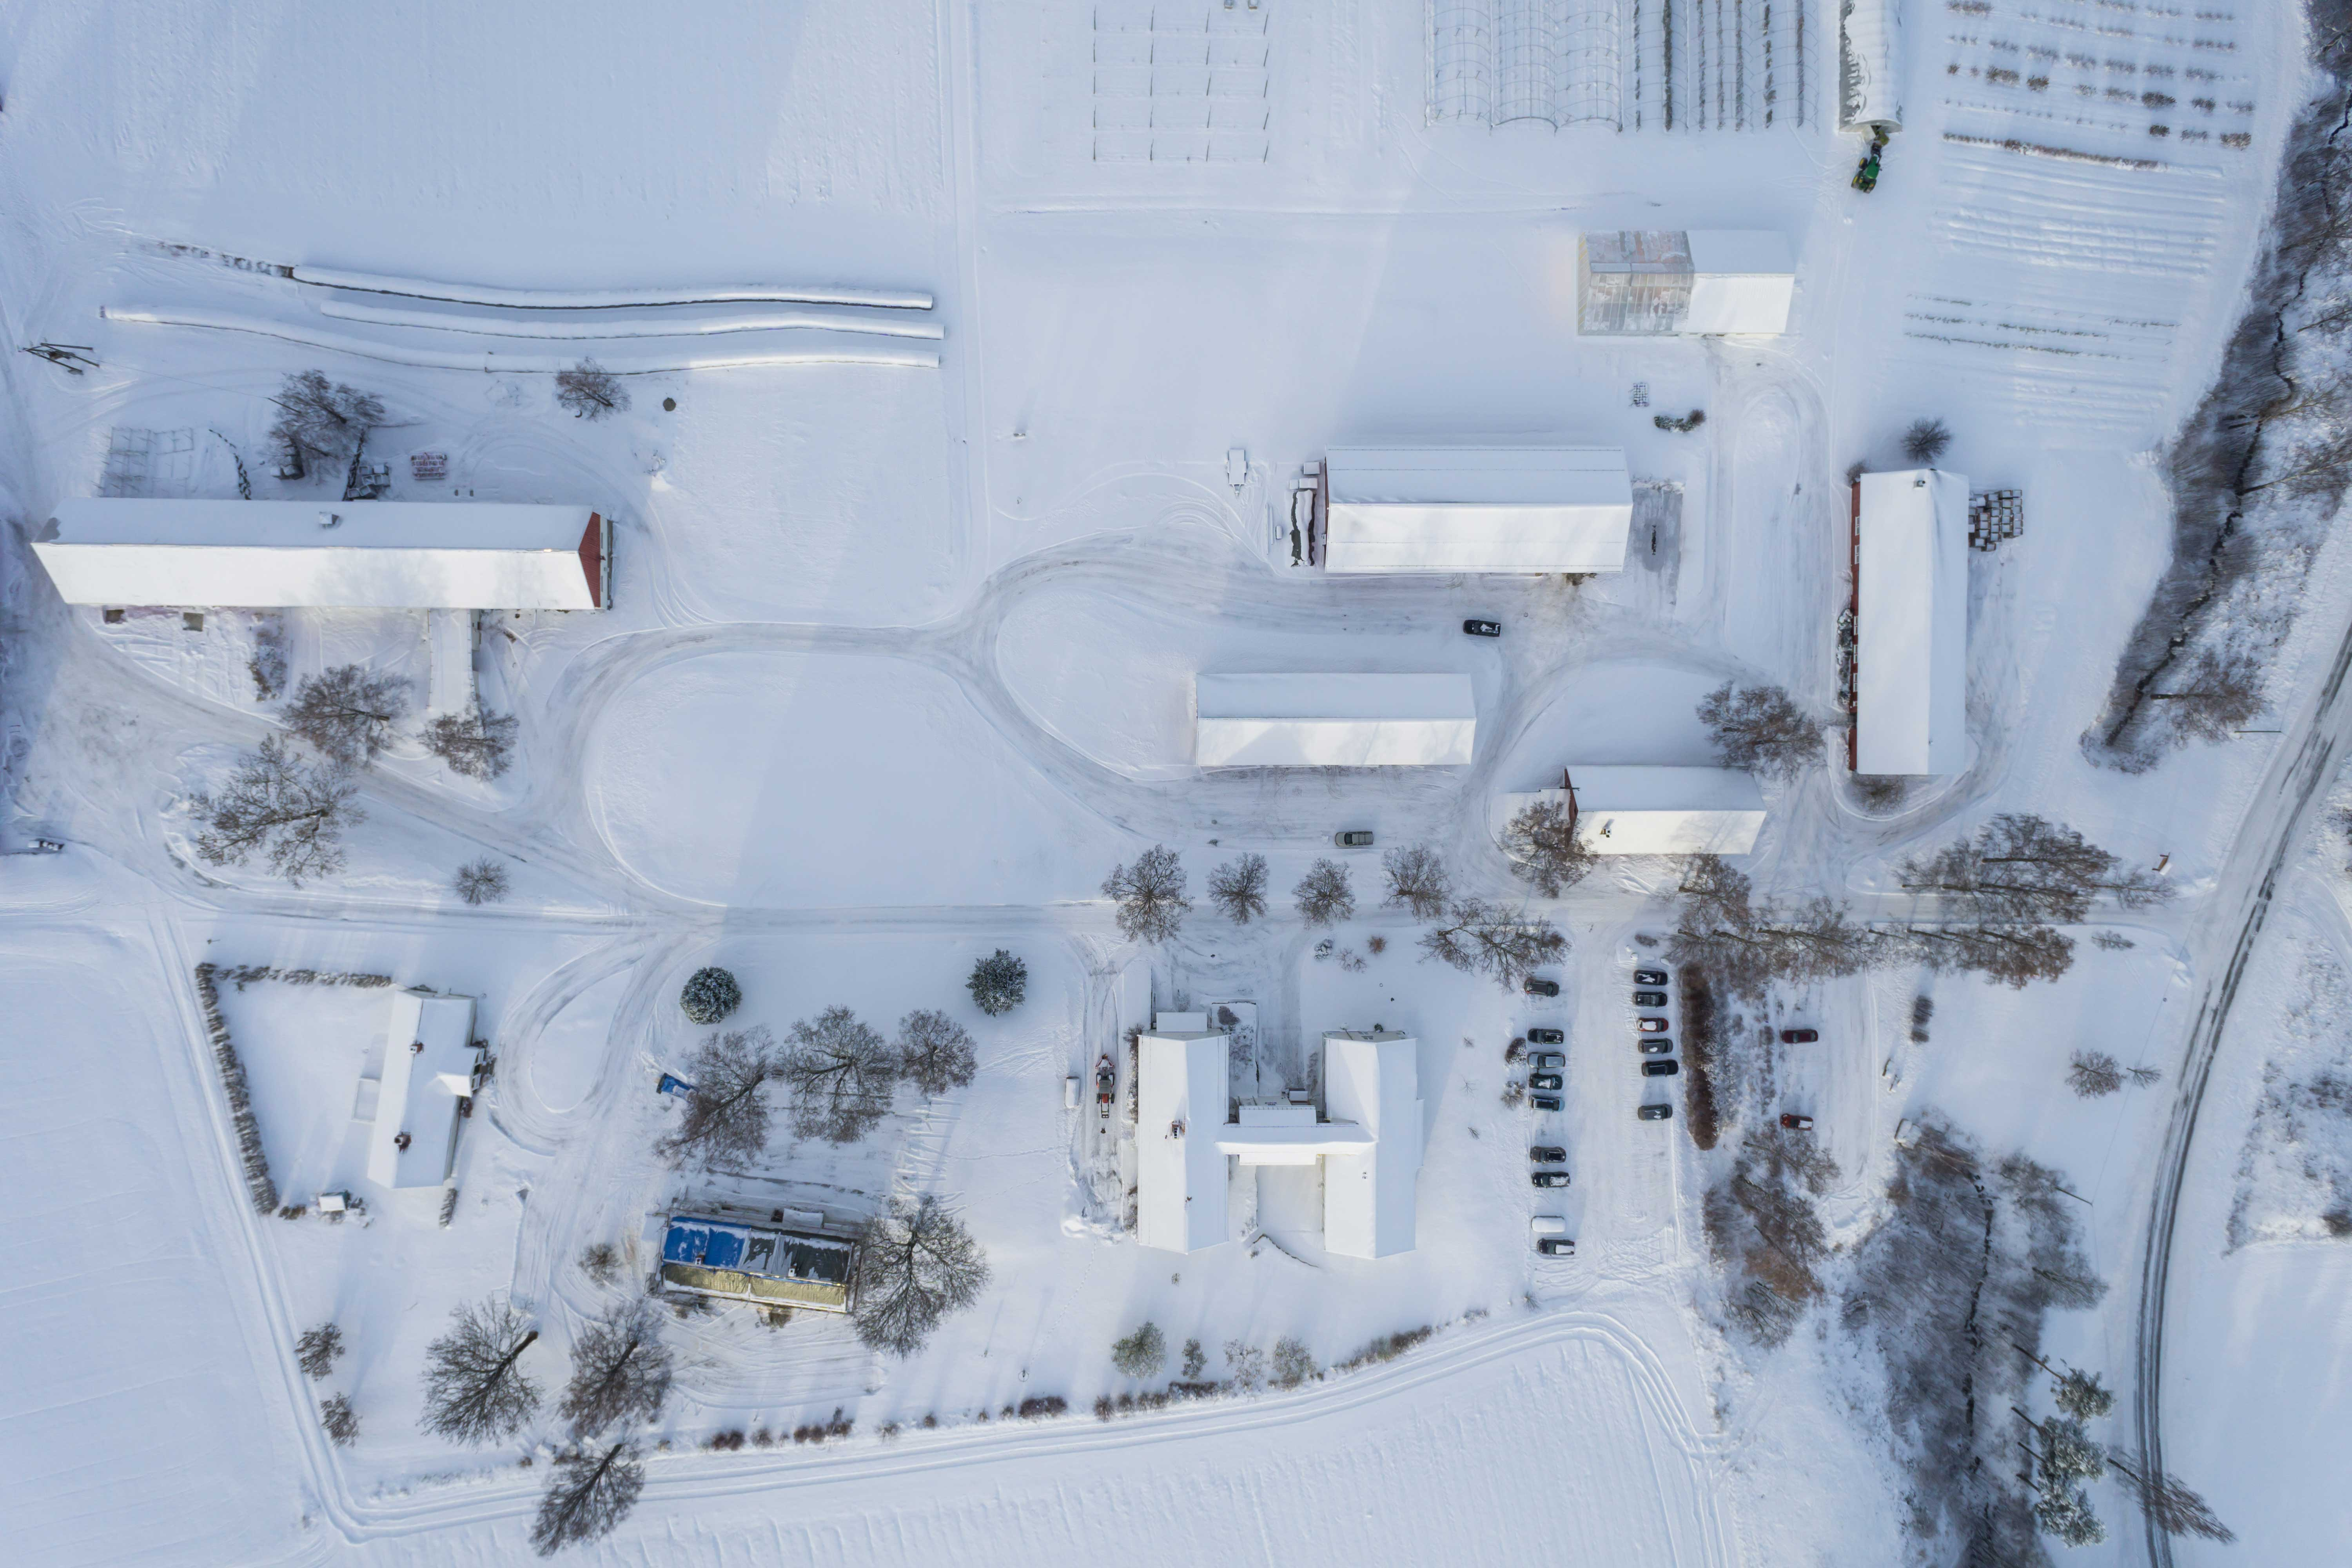 Facilitys of Apelsvoll research station in winter